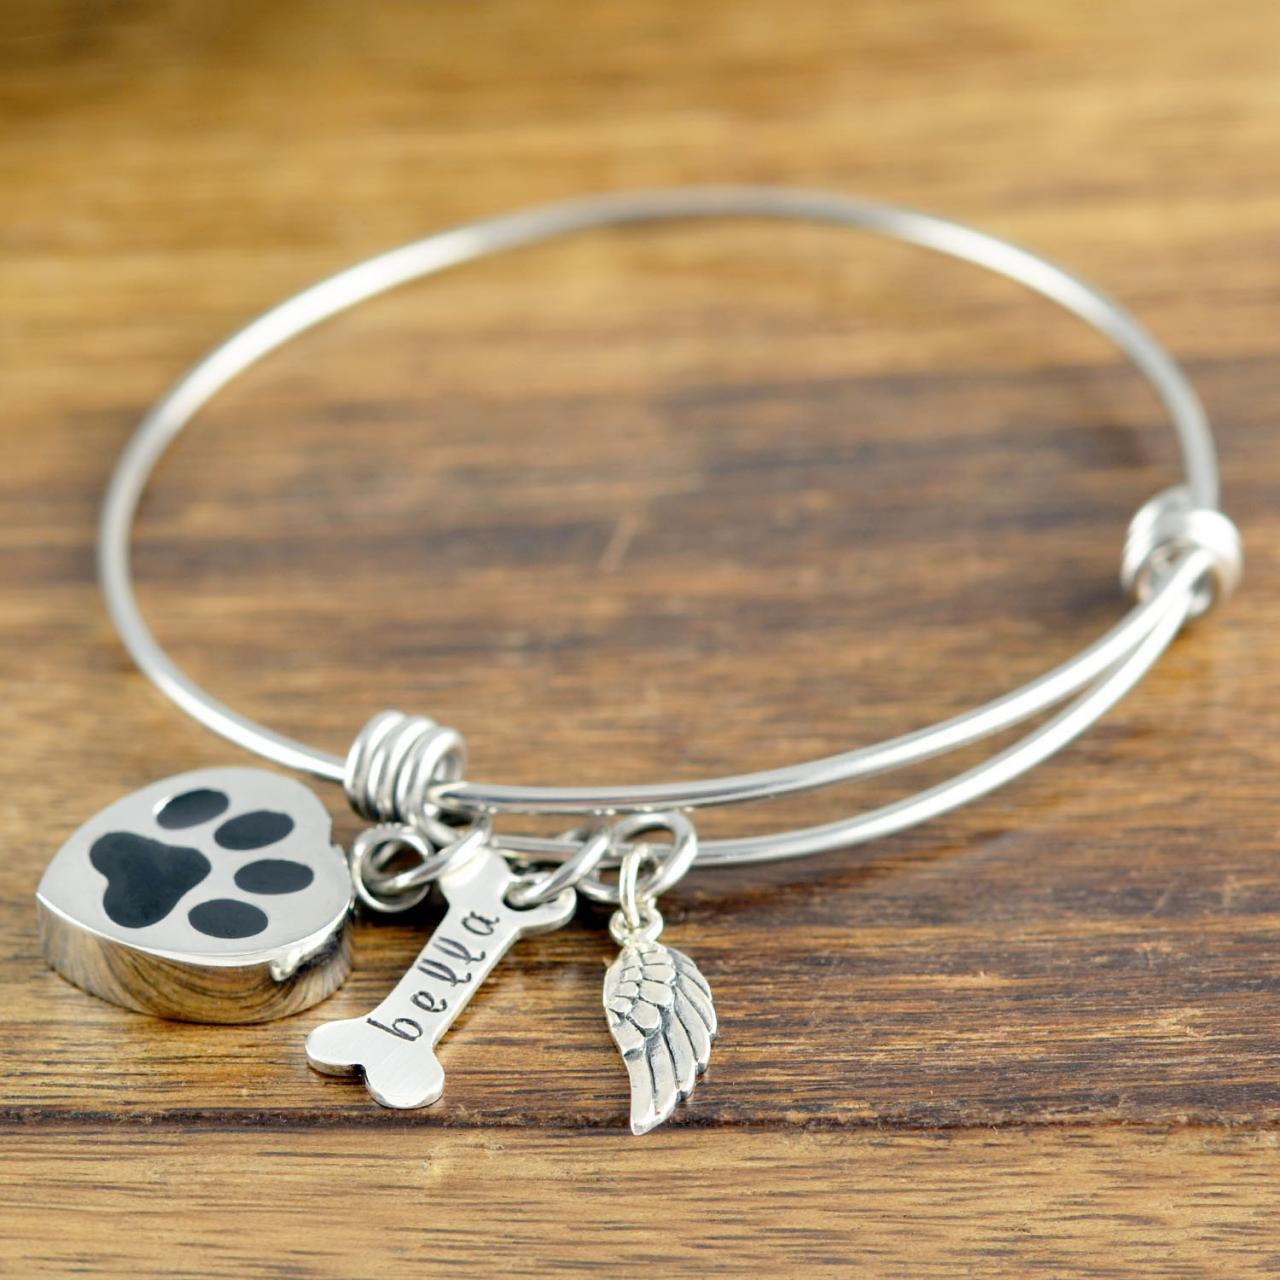 Personalized Dog Cremation Bracelet, Pet Memorial Bracelet, Pet Memorial Jewelry, Cremation Bracelets, Christmas Gifts, Loss of Dog